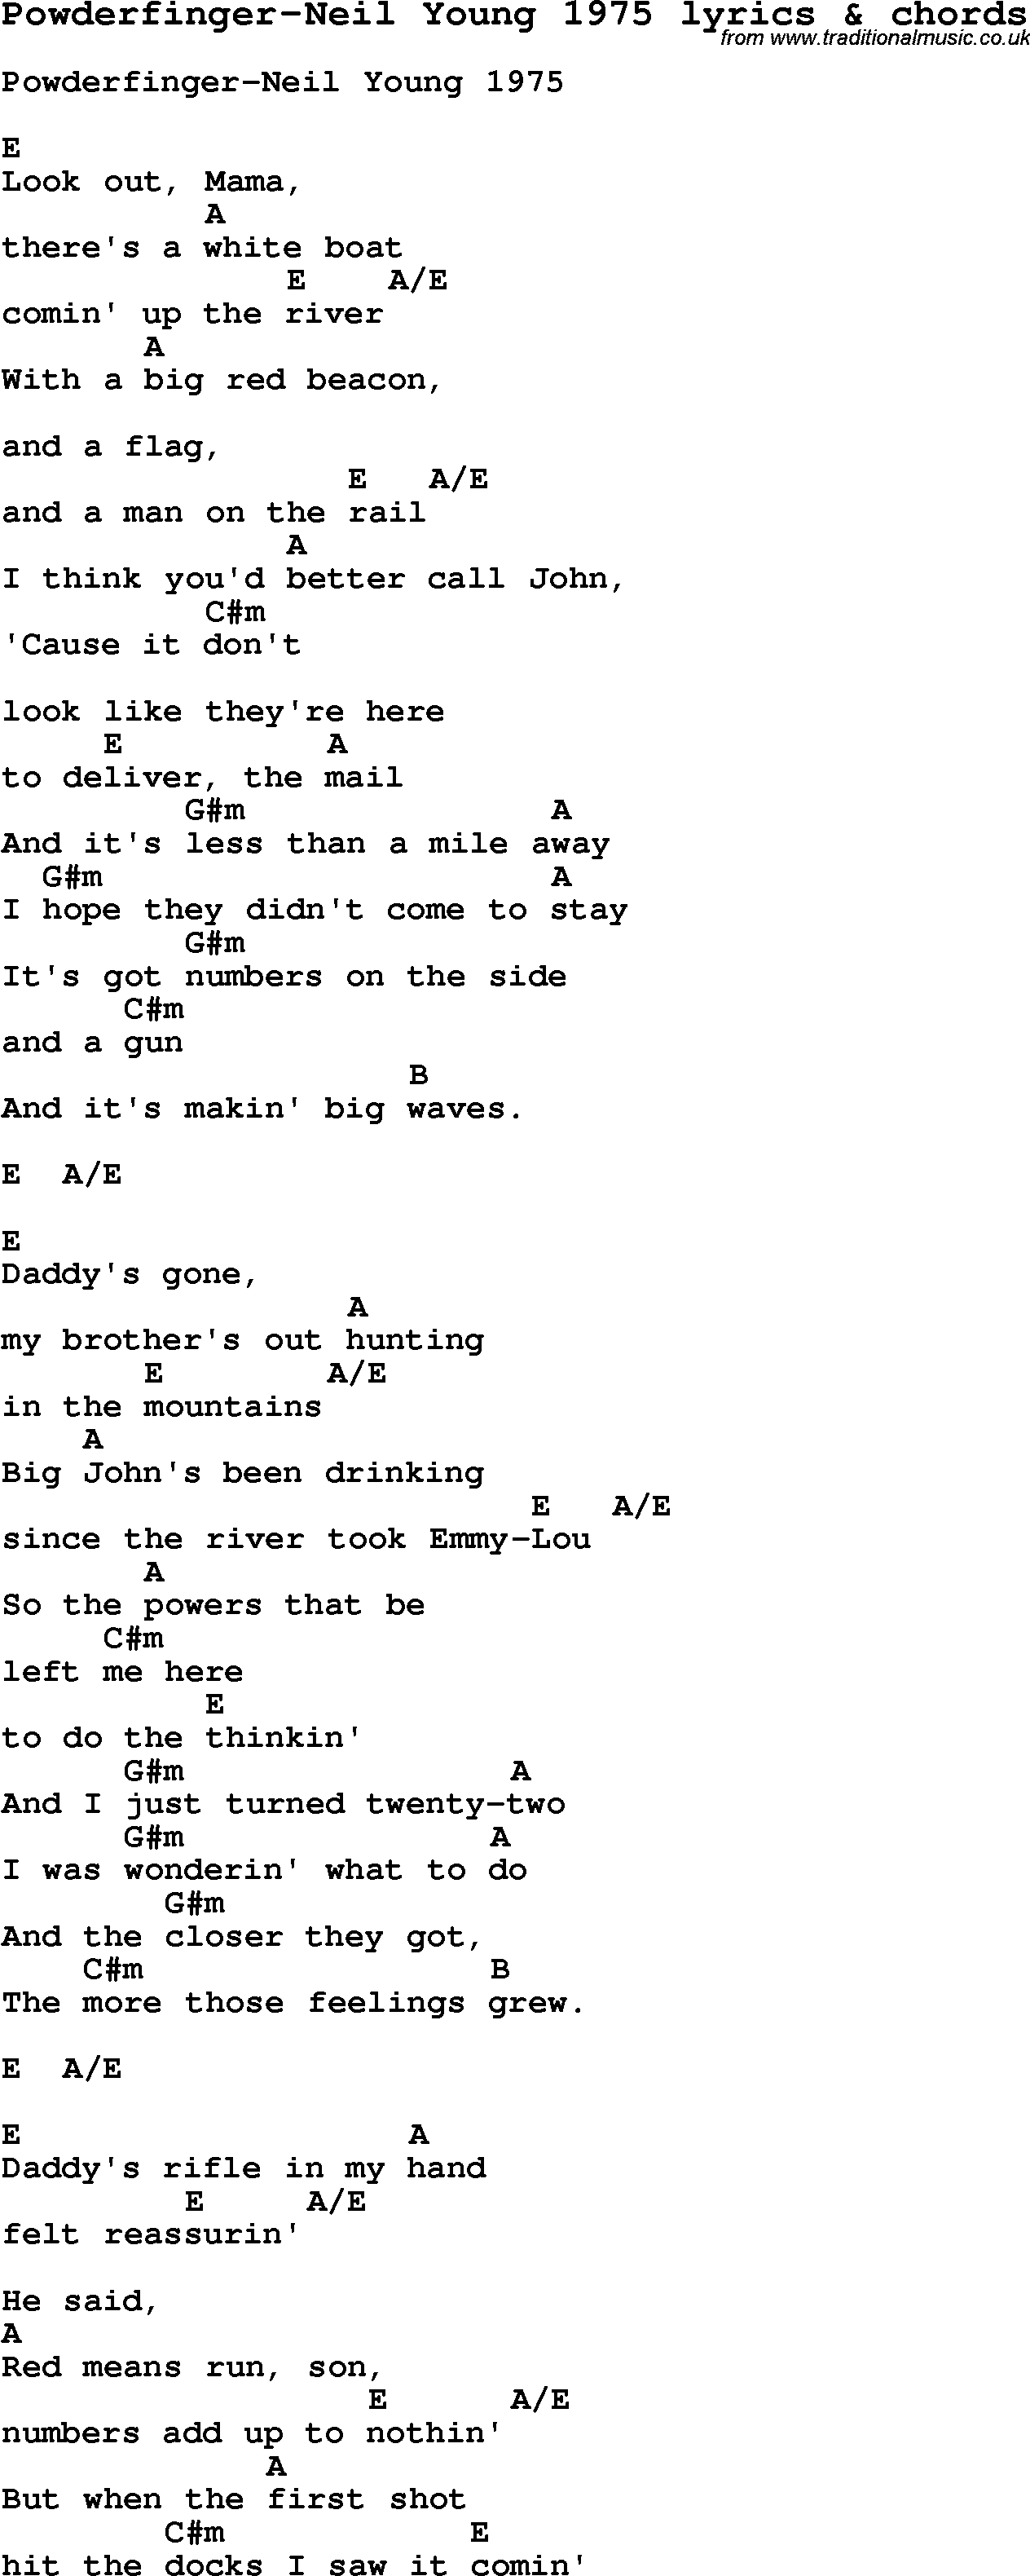 Love Song Lyrics for:Powderfinger-Neil Young 1975 with chords.